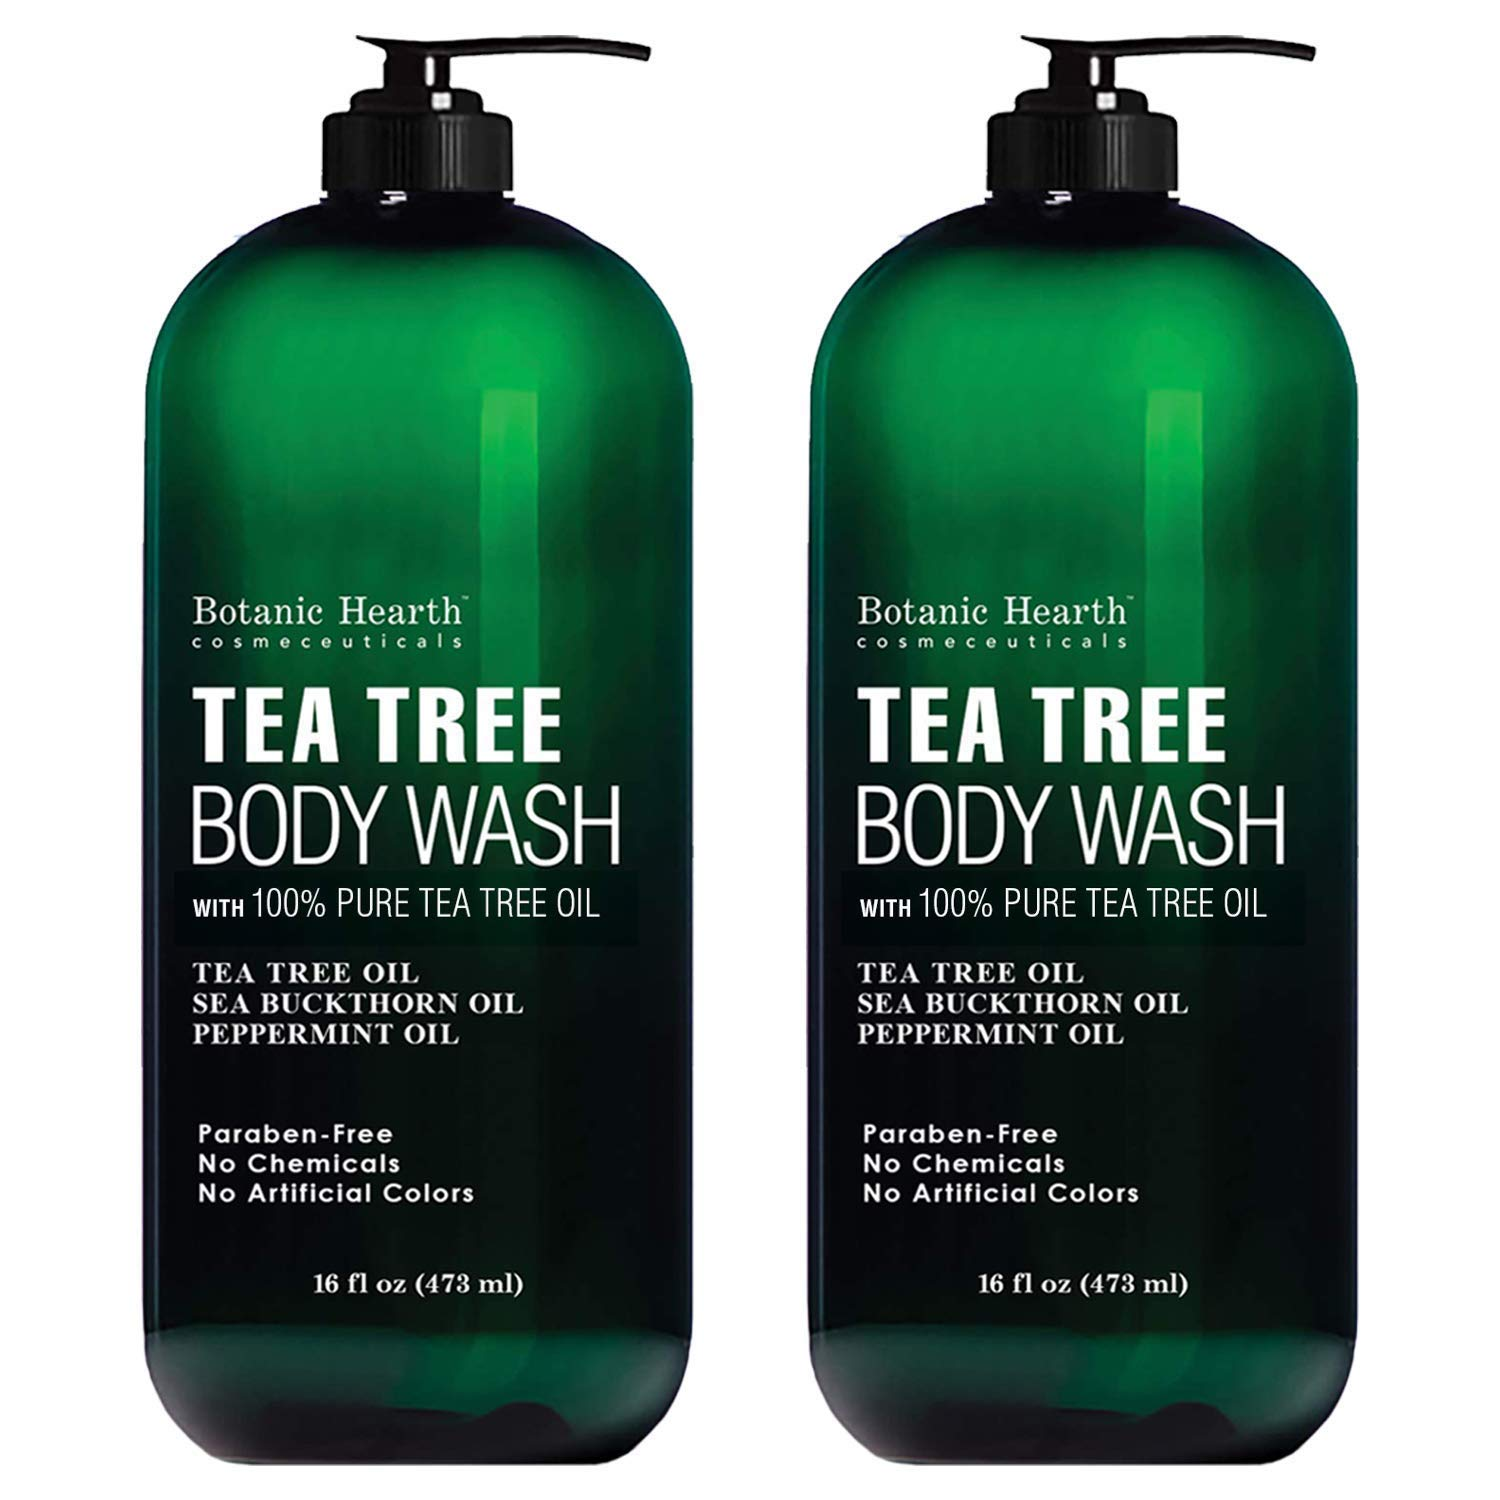 BOTANIC HEARTH Tea Tree Body Wash, Helps Nail Fungus, Athletes Foot, Ringworms, Jock Itch, Acne, Eczema & Body Odor, Soothes Itching & Promotes Healthy Skin and Feet, Naturally Scented, 16fl oz 2 Pack